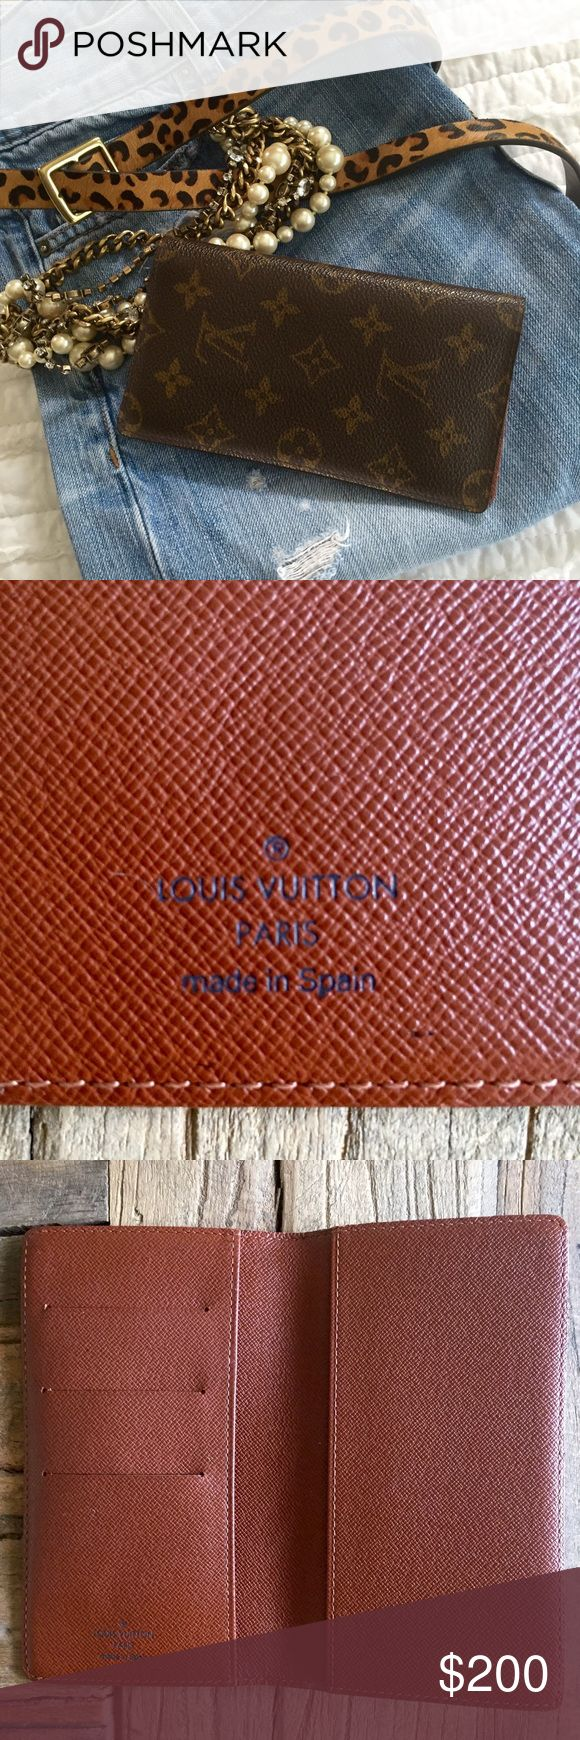 Louis Vuitton Wallet PRICE FIRM NO OFFERS‼️ AUTHENTIC LV checkbook cover/ with slots for drivers license and credit cards, also a place for cash. Inside under slot there is a DATE CODE:  CA0999 . I got this as a gift and it has been sitting in a drawer unused for a few years, basically I forgot about it. EUC, no box or dust bag. There is a 2nd listing with more pictures. Louis Vuitton Bags Wallets